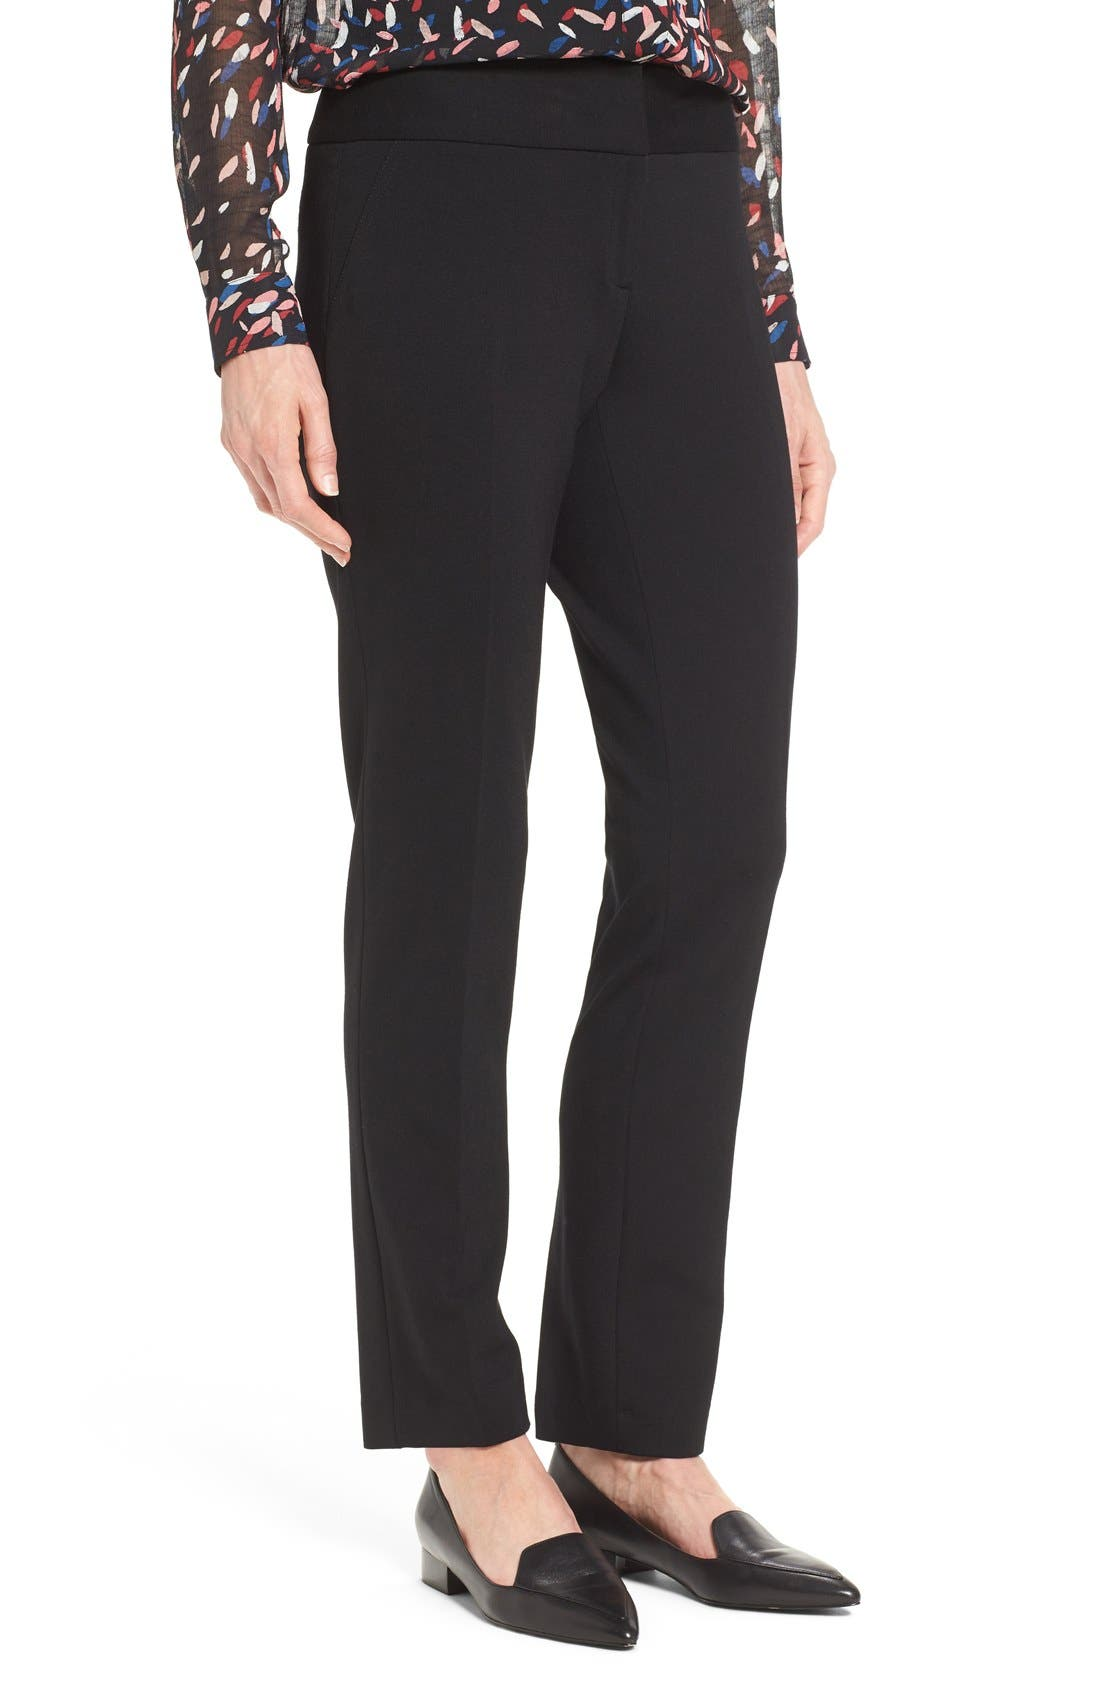 VINCE CAMUTO Ponte Ankle Pants, Main, color, BLACK